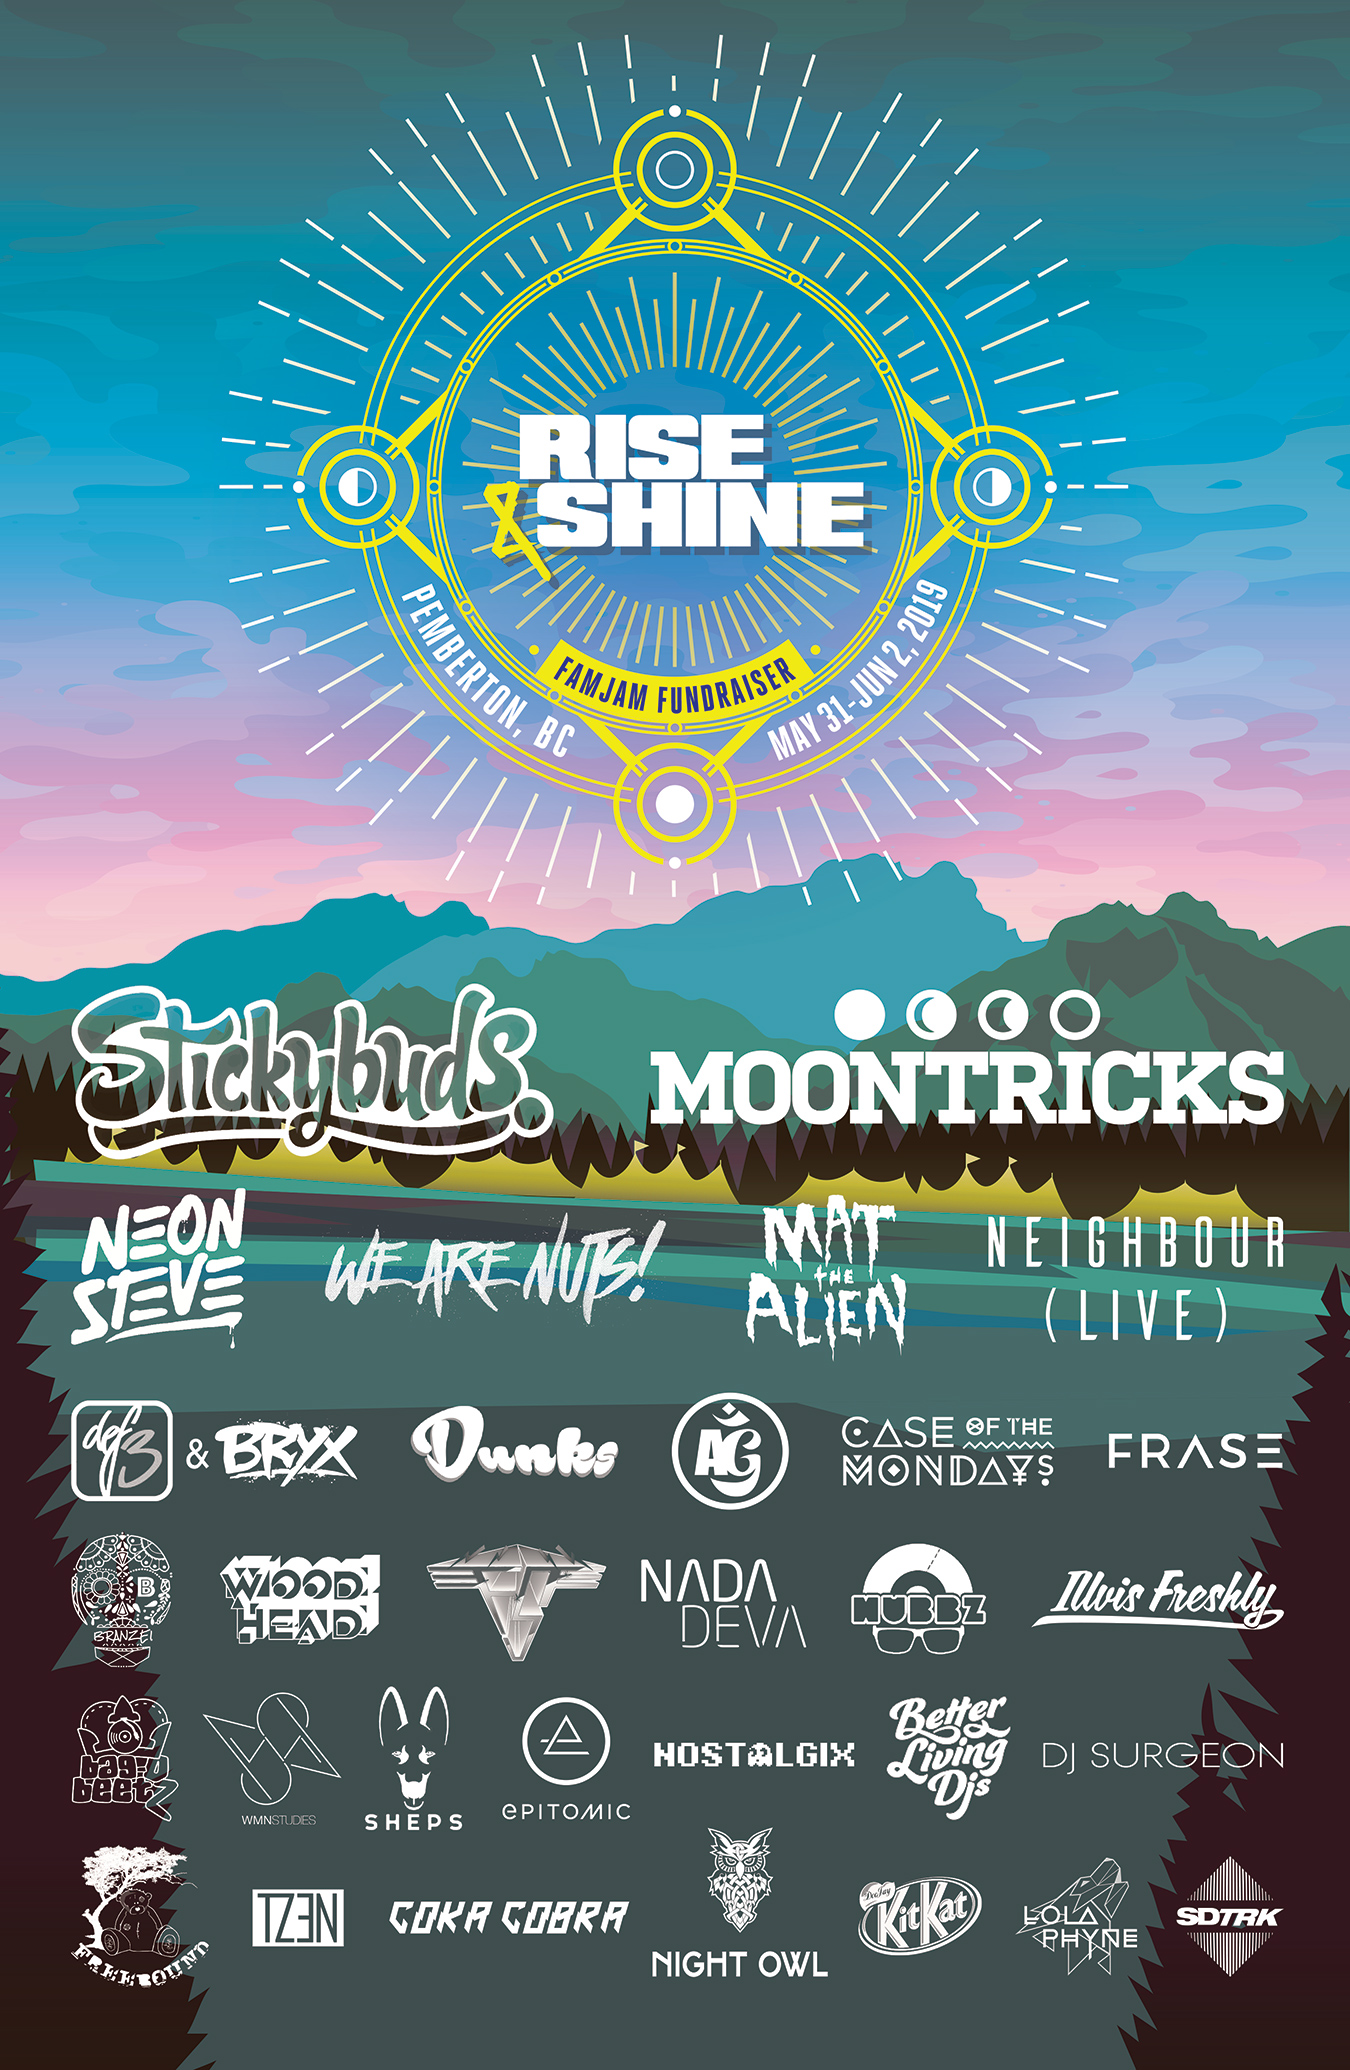 RiseAndShine-Poster-11x17in-2019-Revised.jpg